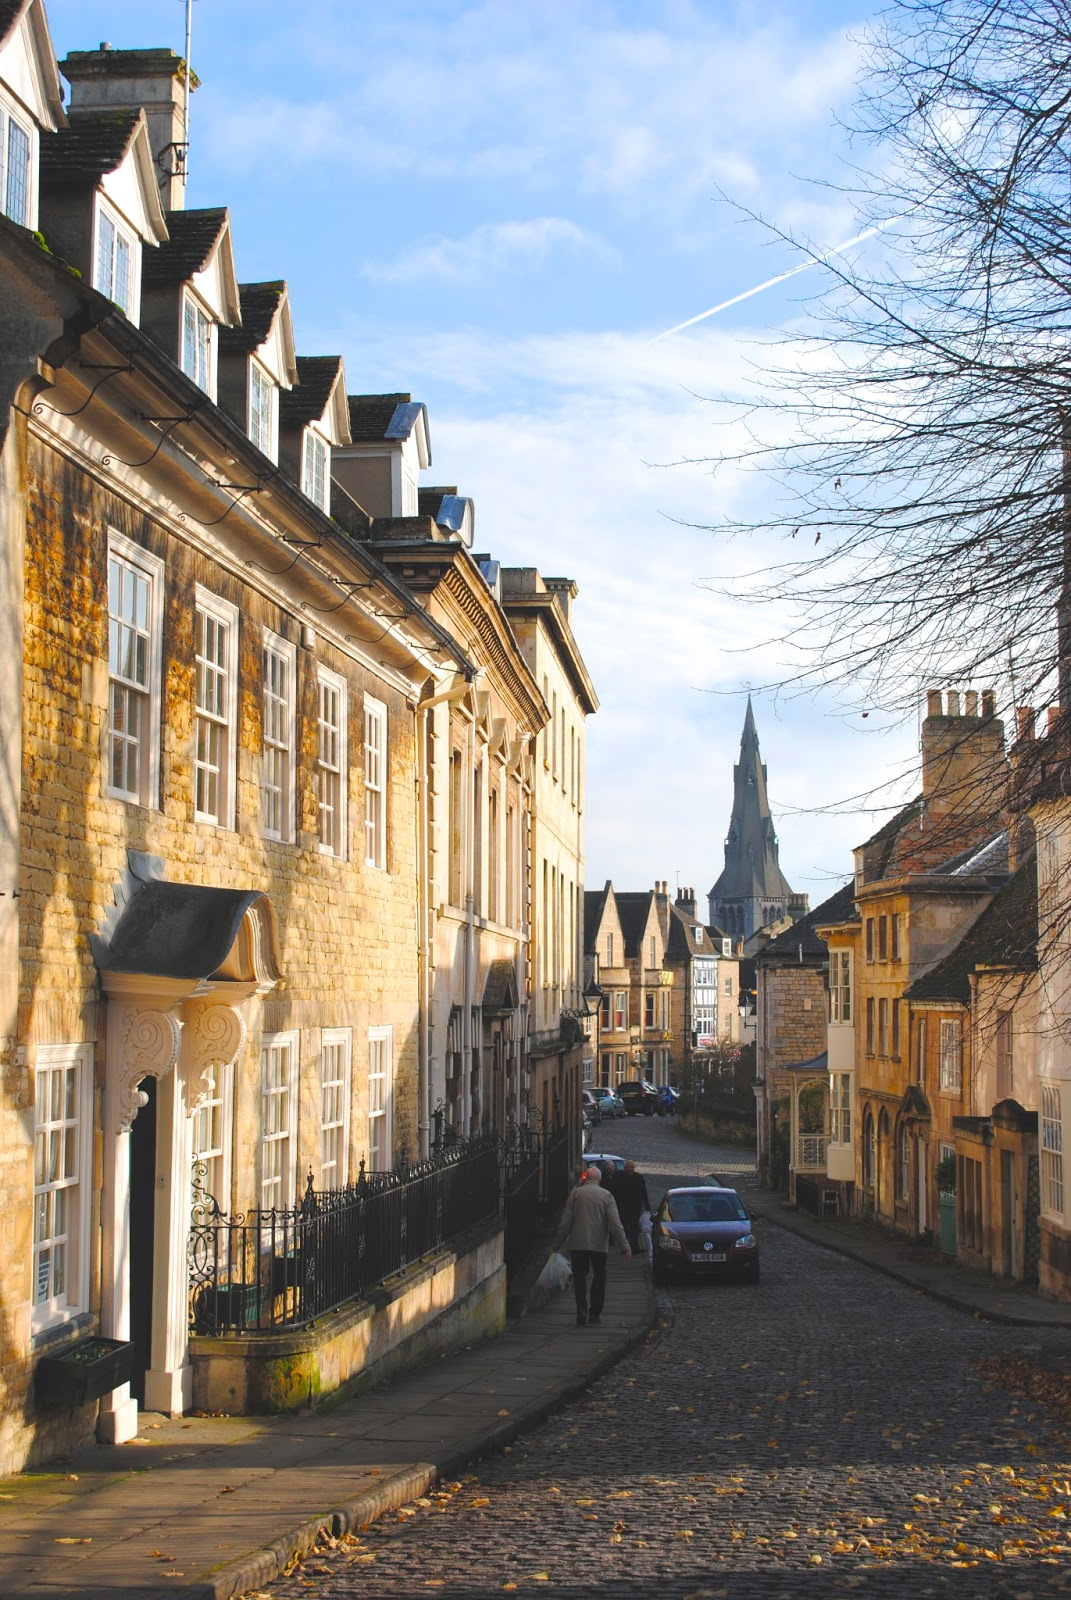 A Tale of Two Cities: A Visit to Stamford